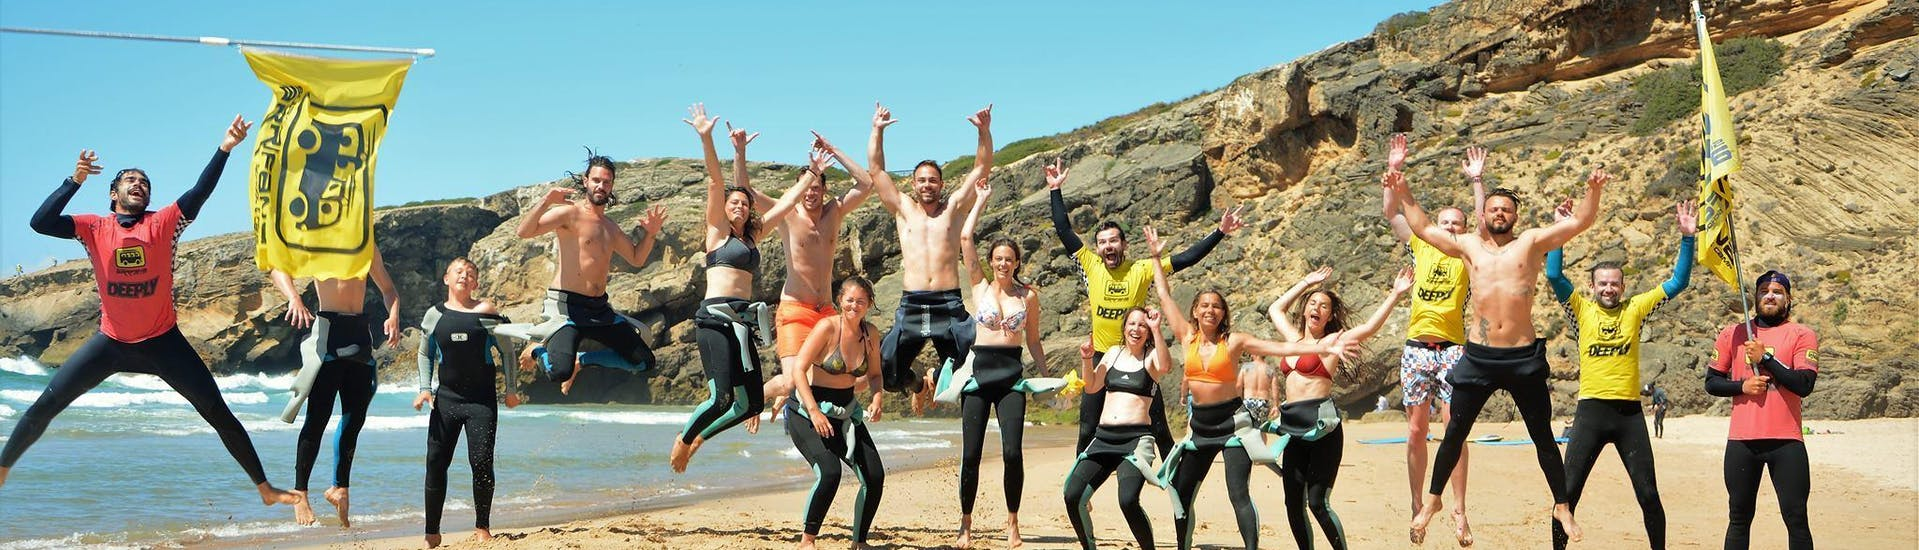 A group of happy surfers is jumping together with their surf instructors from Arrifana Surf School at the Praia da Arrifana in Arrifana.